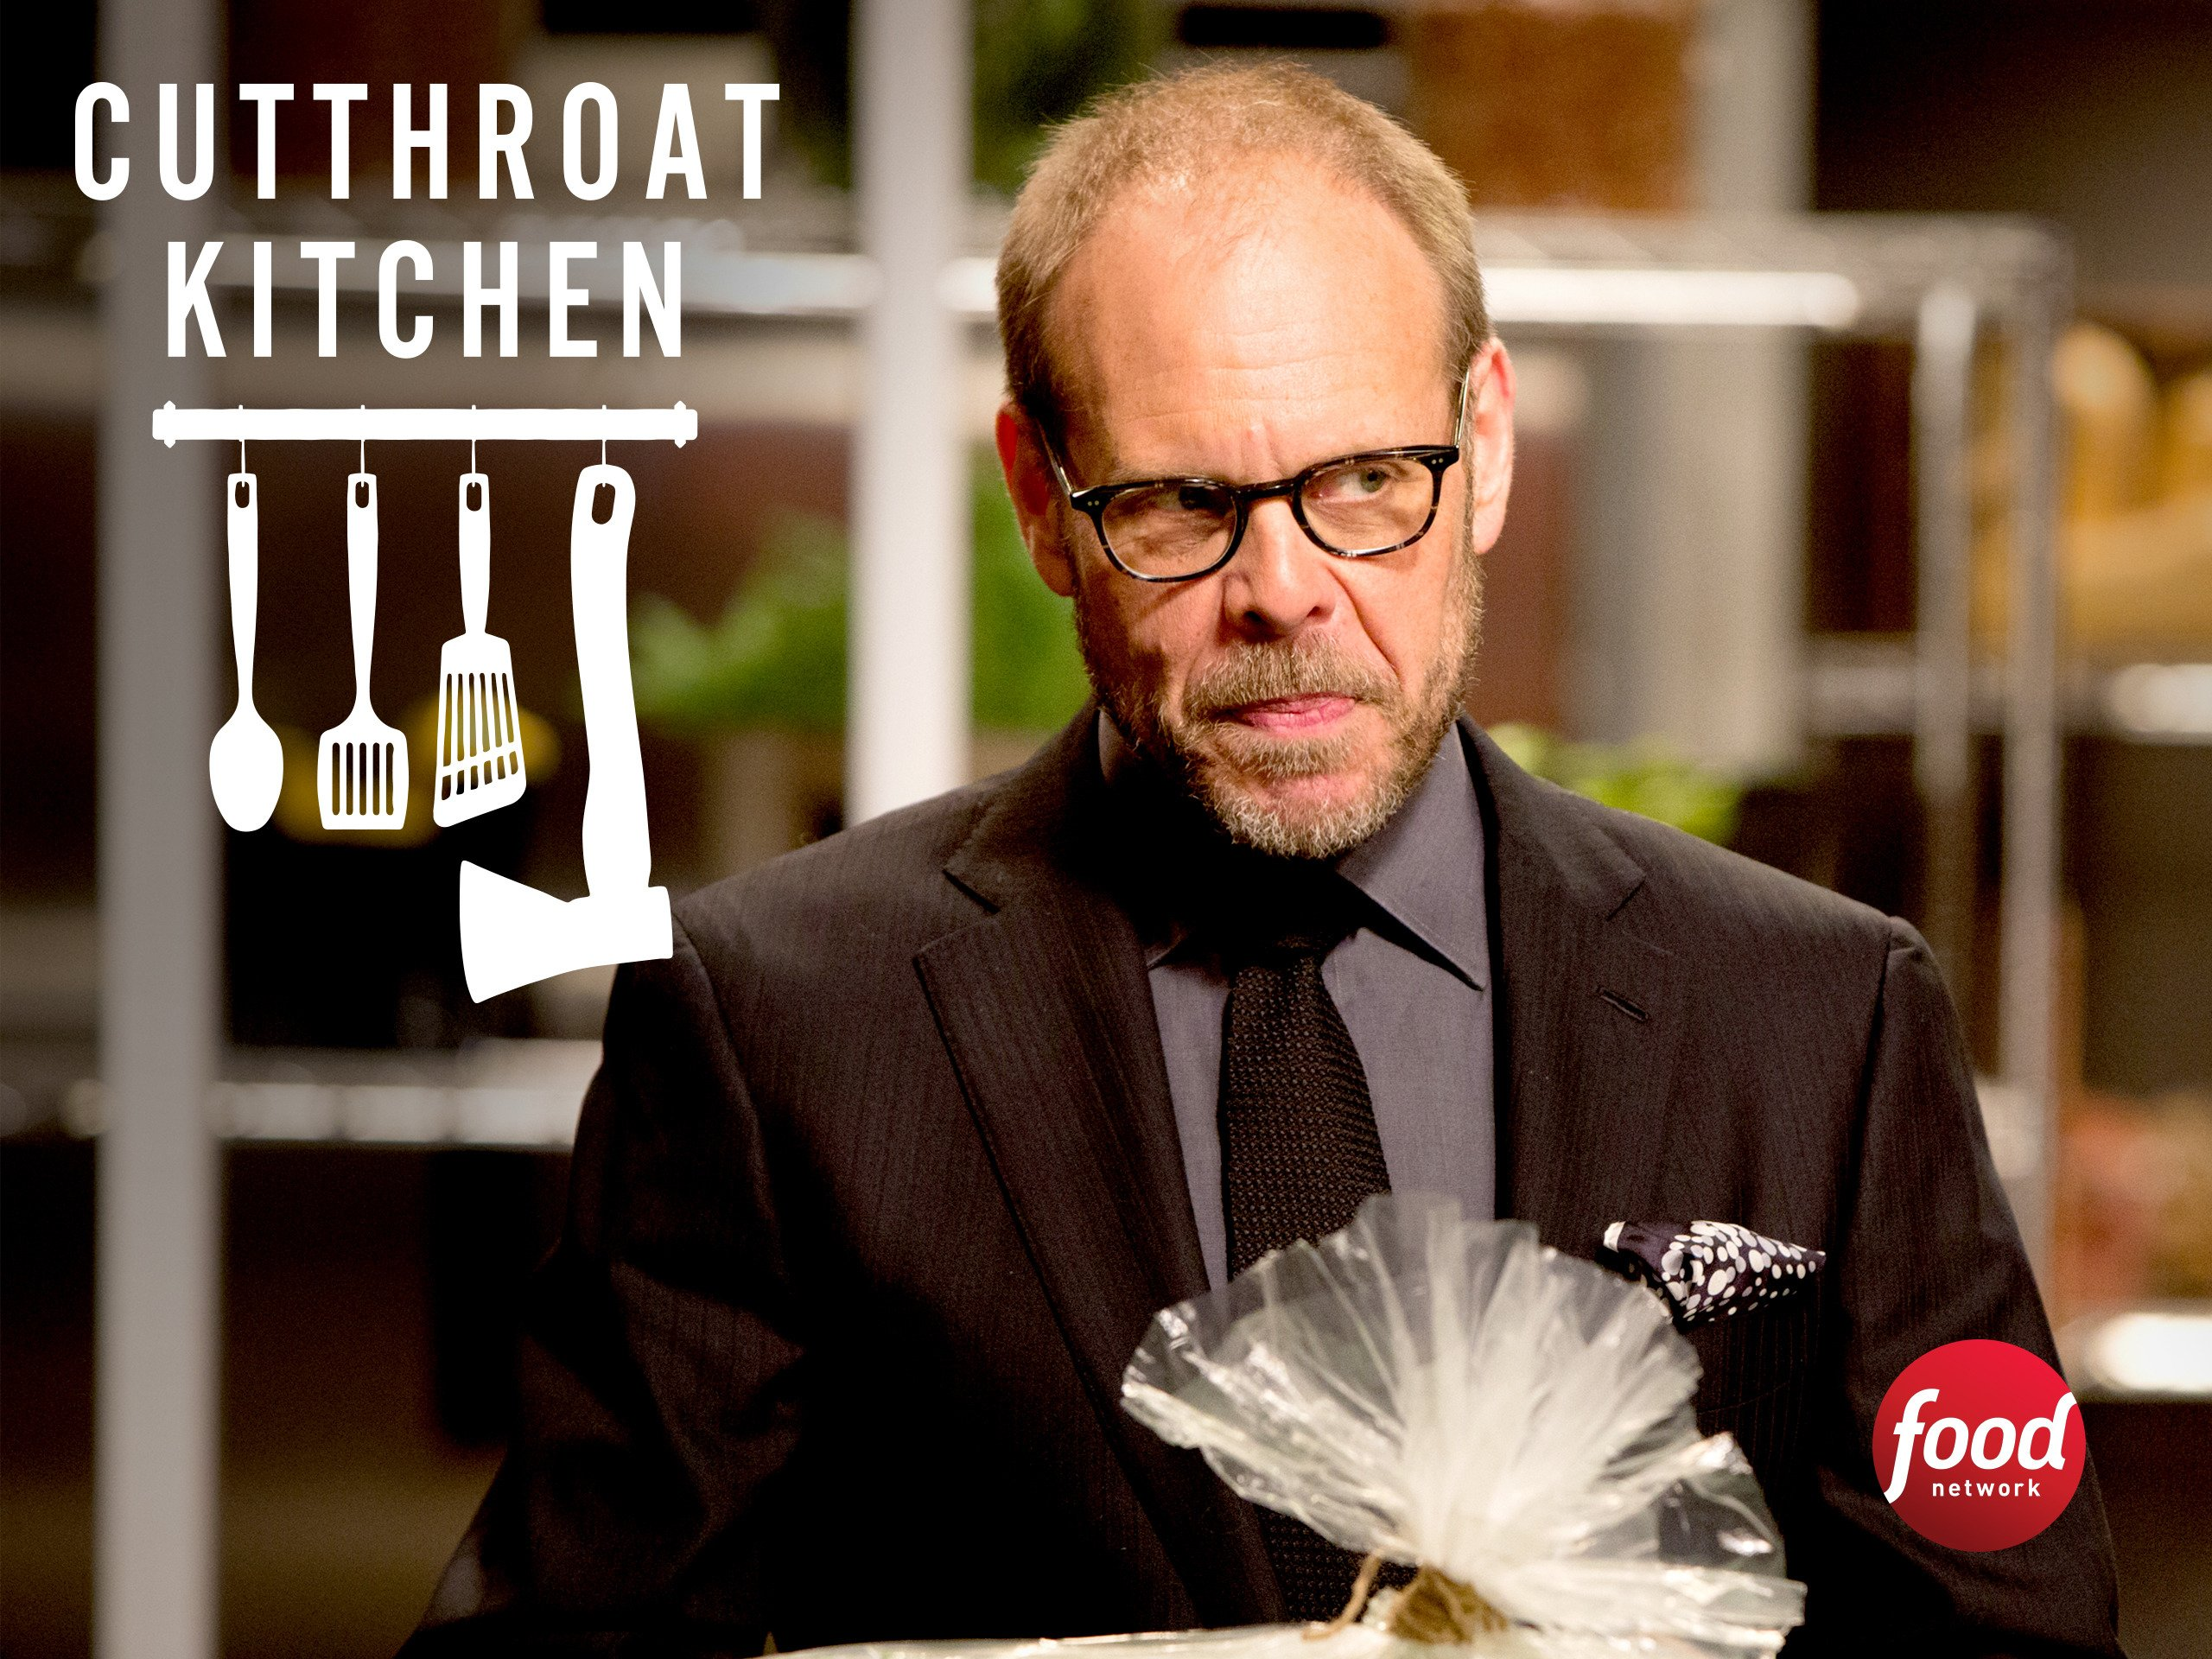 amazoncom cutthroat kitchen season 2 amazon digital services llc - Watch Cutthroat Kitchen Online Free